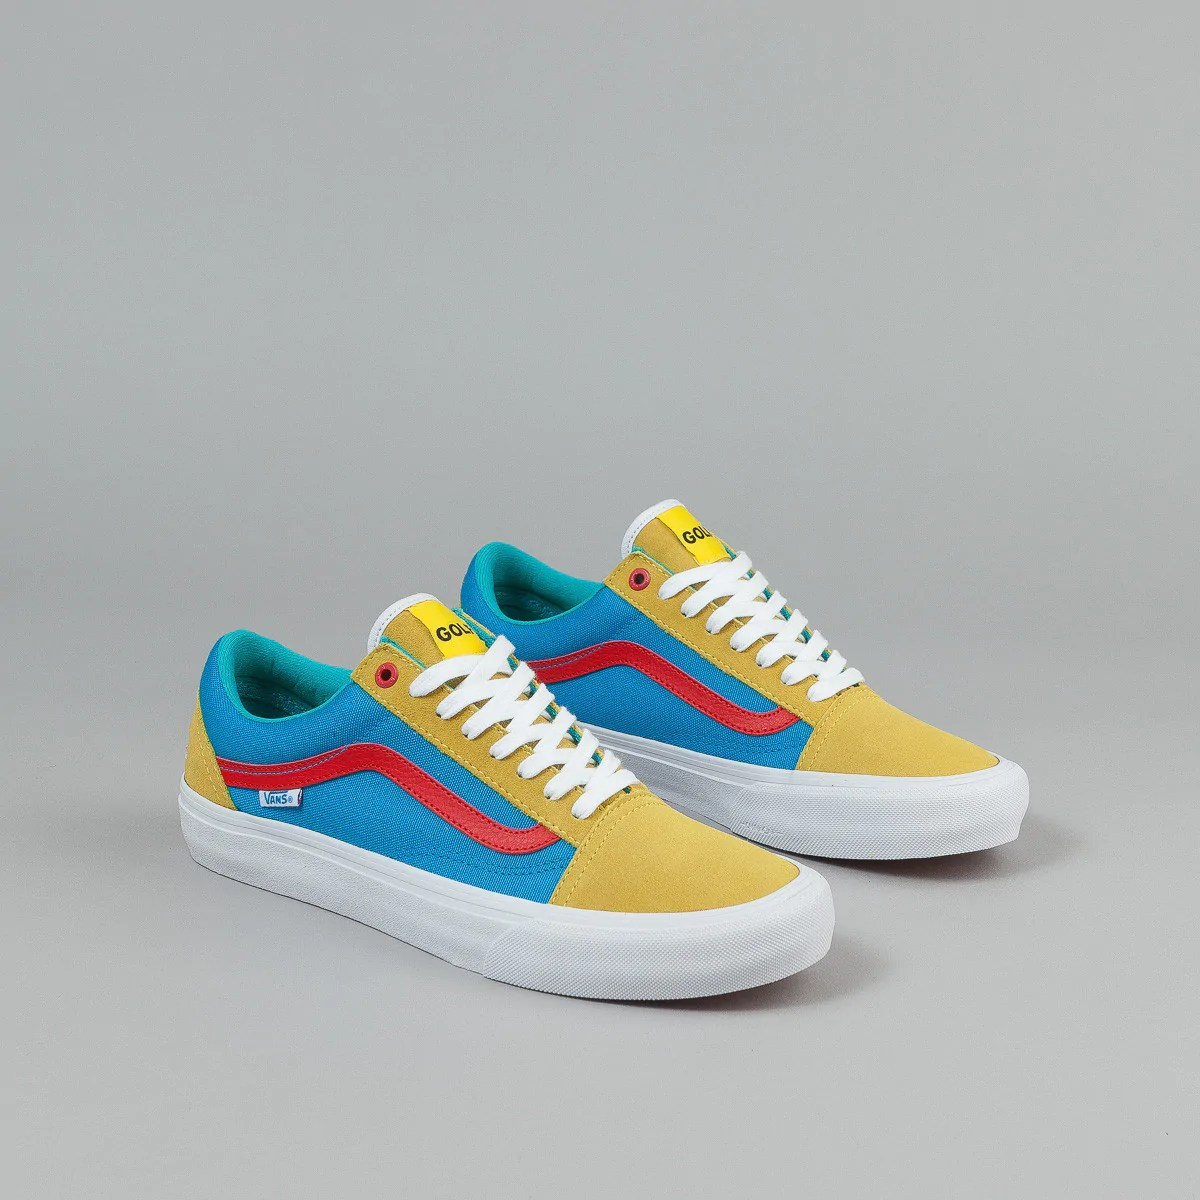 Vans Old Skool Pro Shoes (Golf Wang) - Yellow / Blue / Red ...